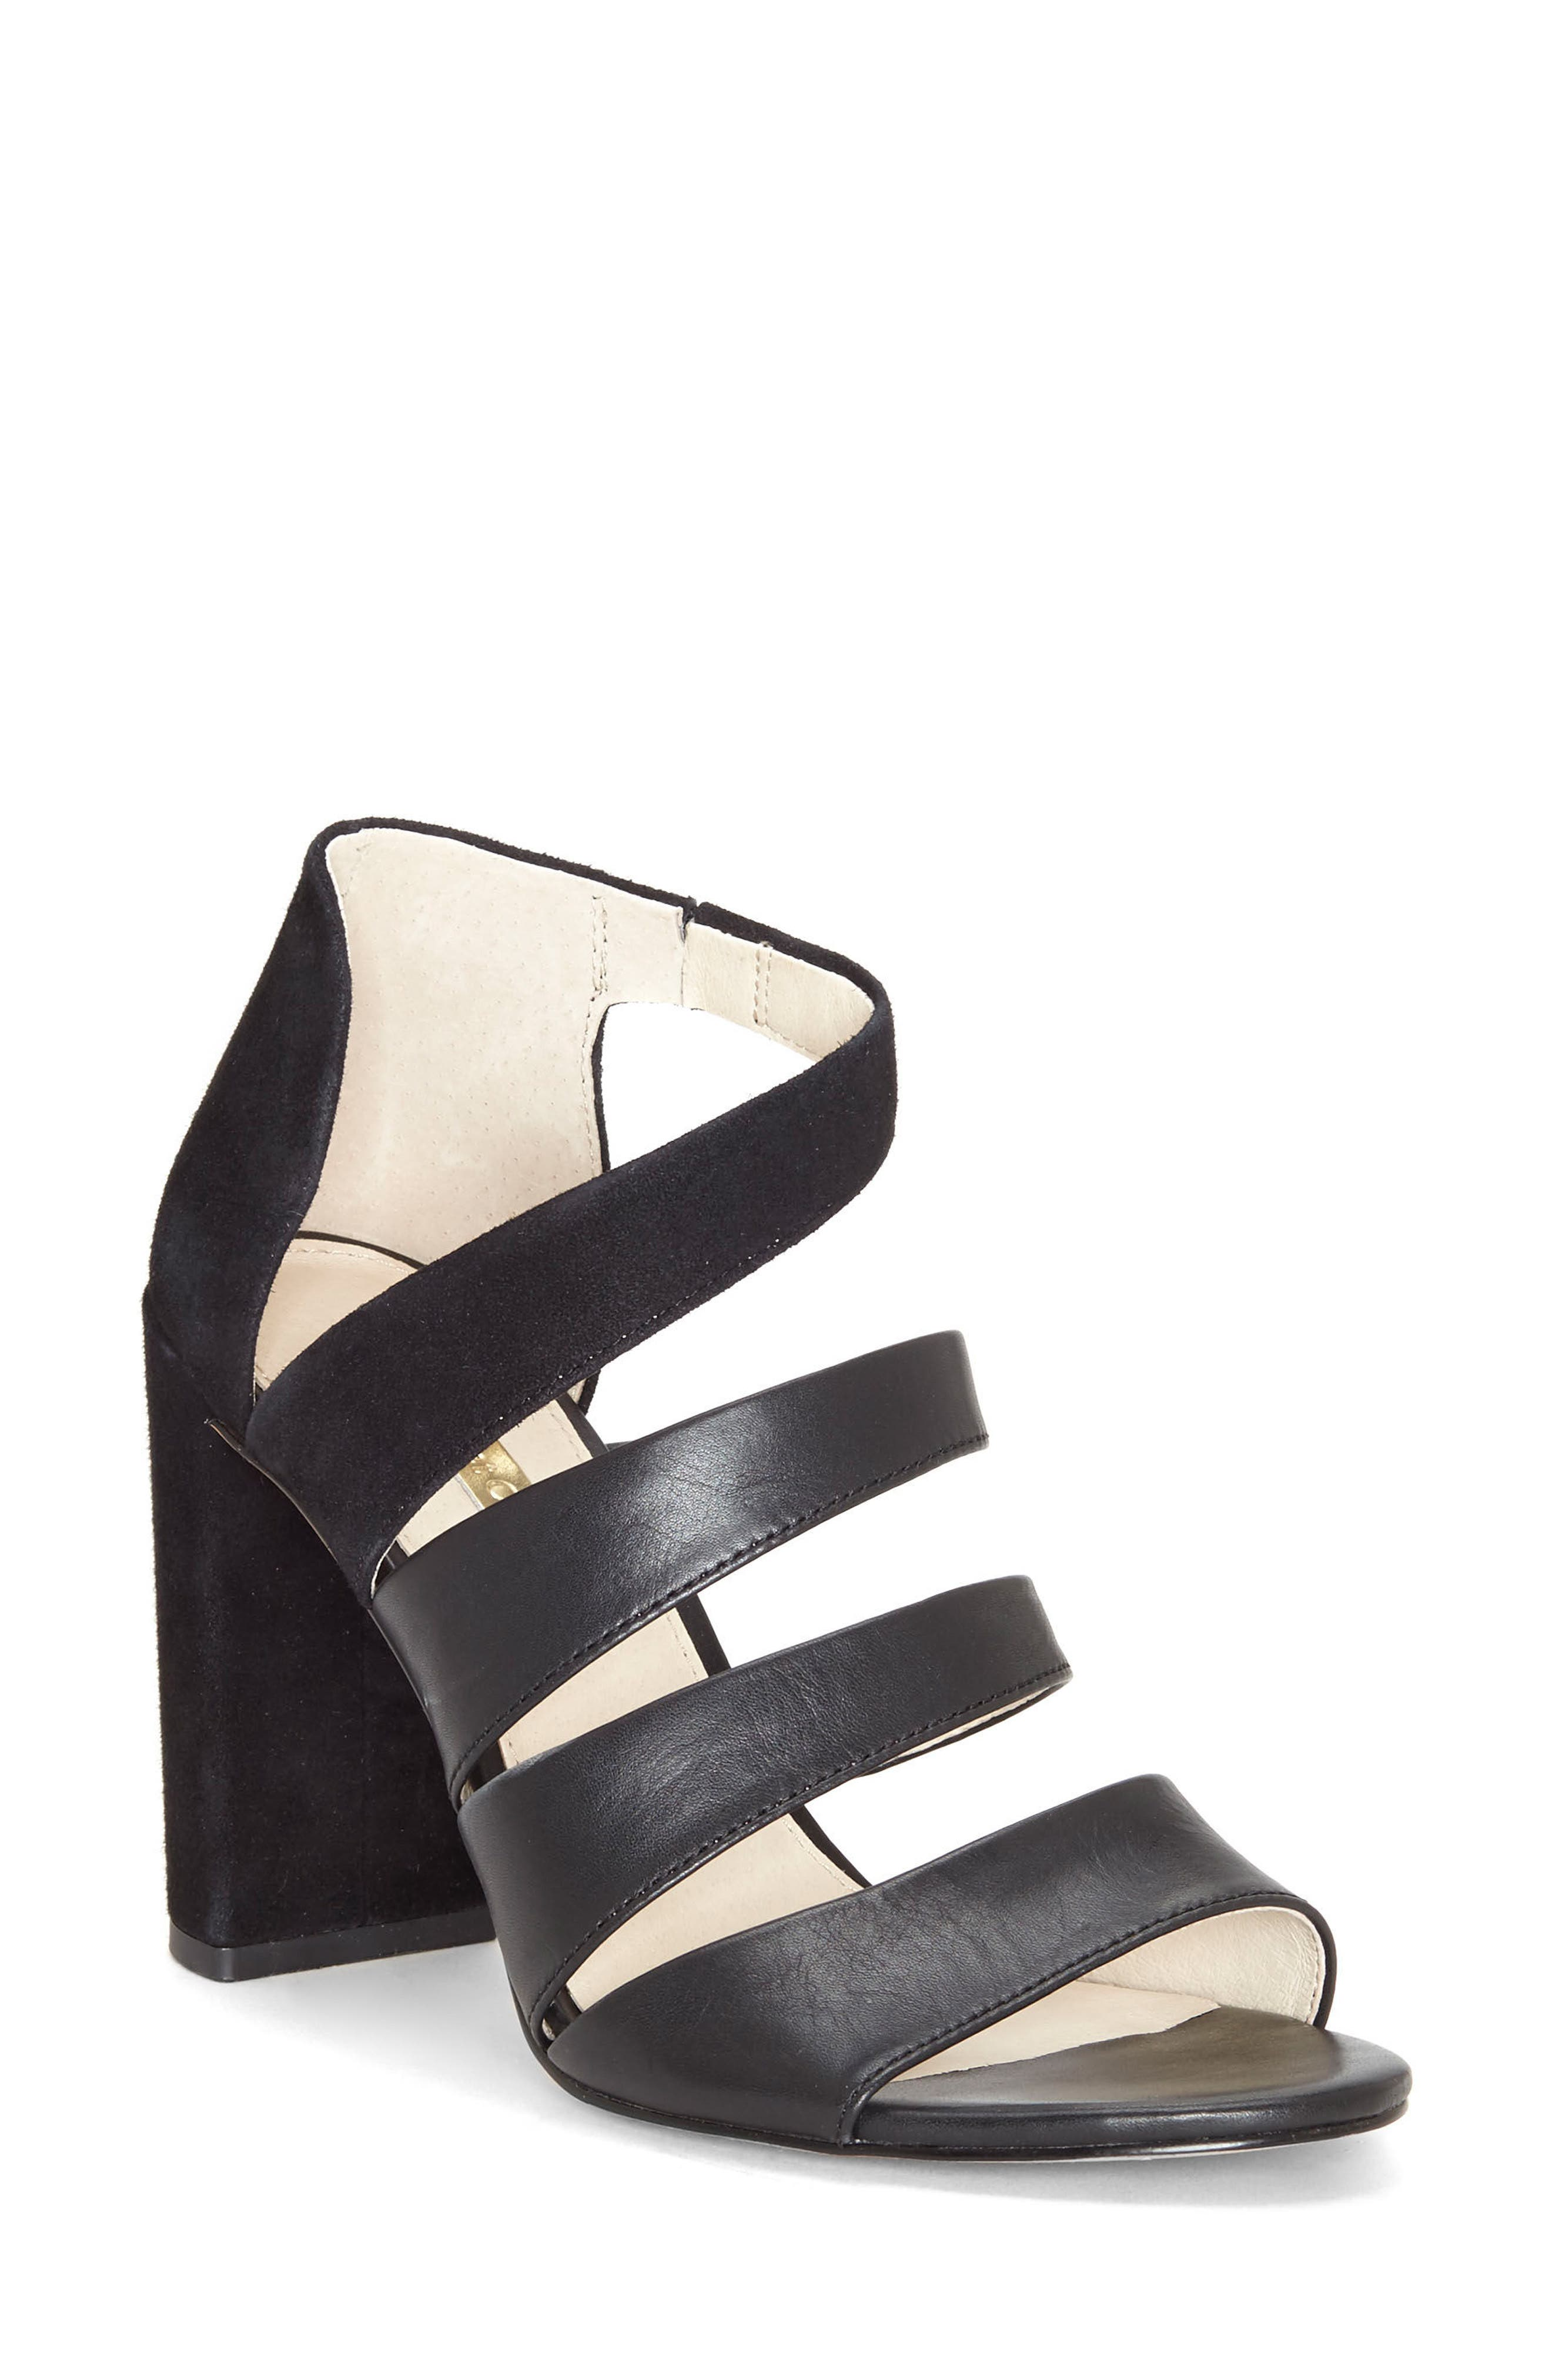 Kainey Strappy Sandal,                         Main,                         color, Black Leather